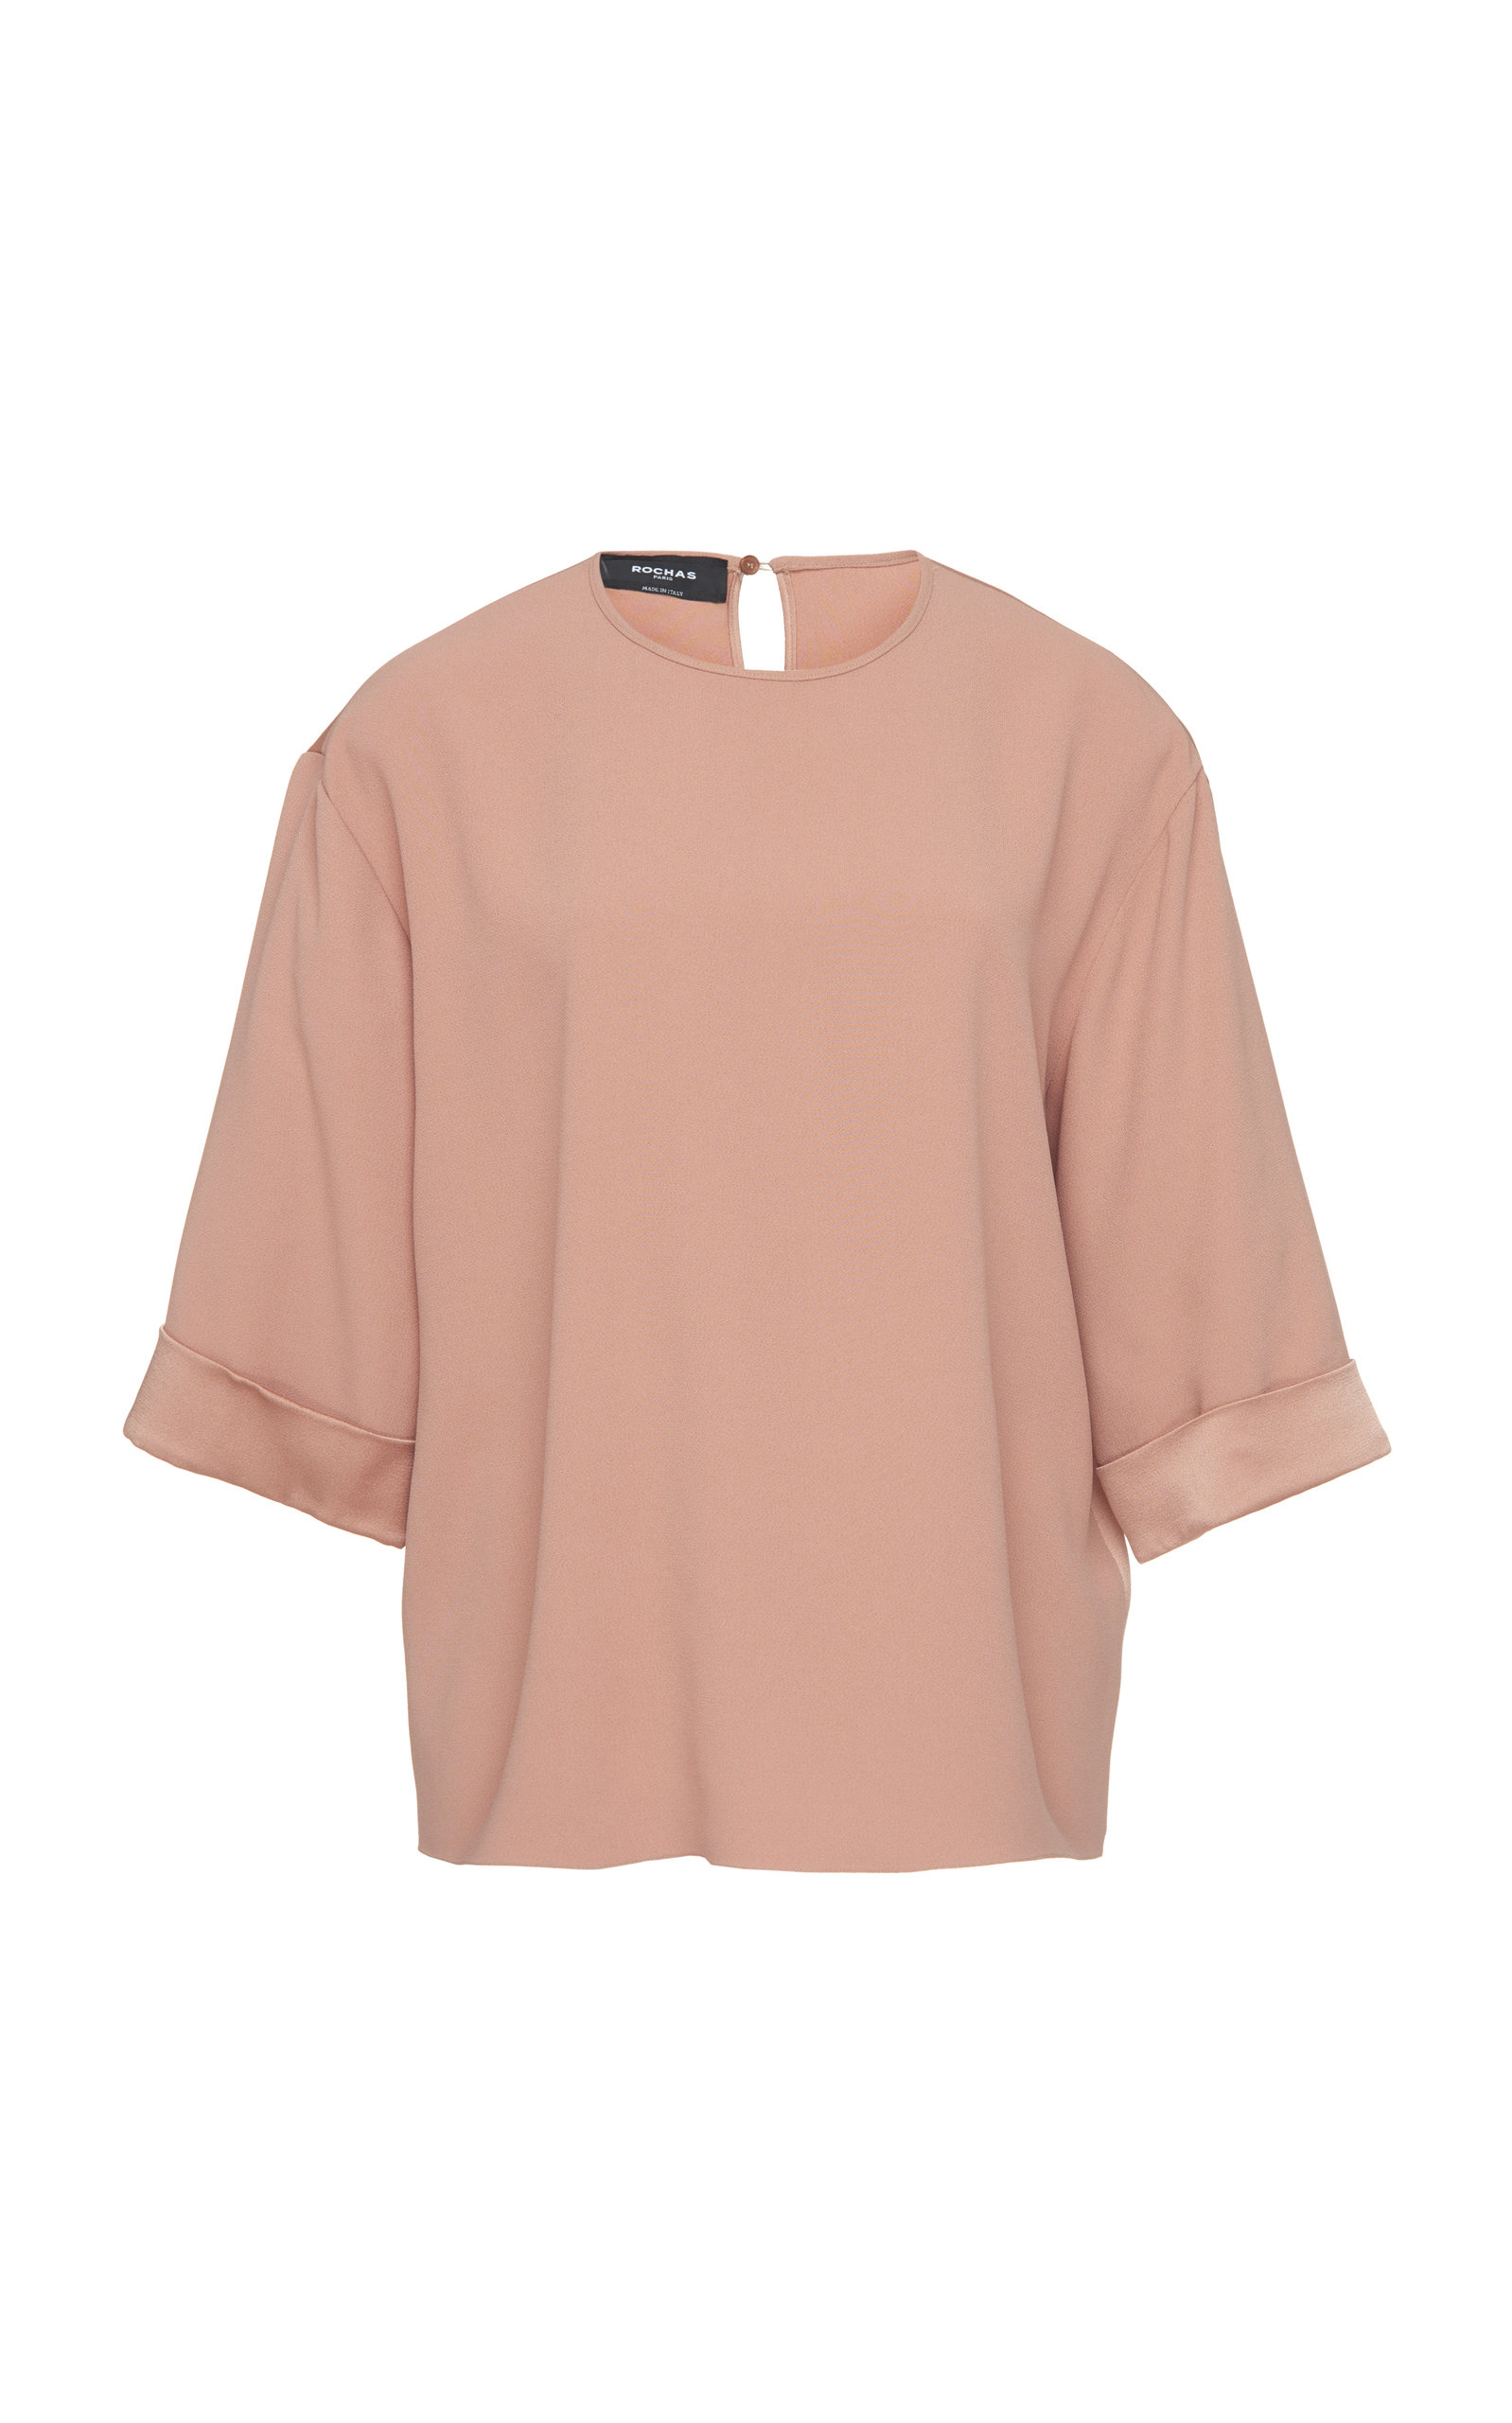 Onithia Oversized Woven Top Rochas 2018 Buy Cheap 2018 New Quality Free Shipping Low Price Outlet For Nice 2018 New JxFcug3